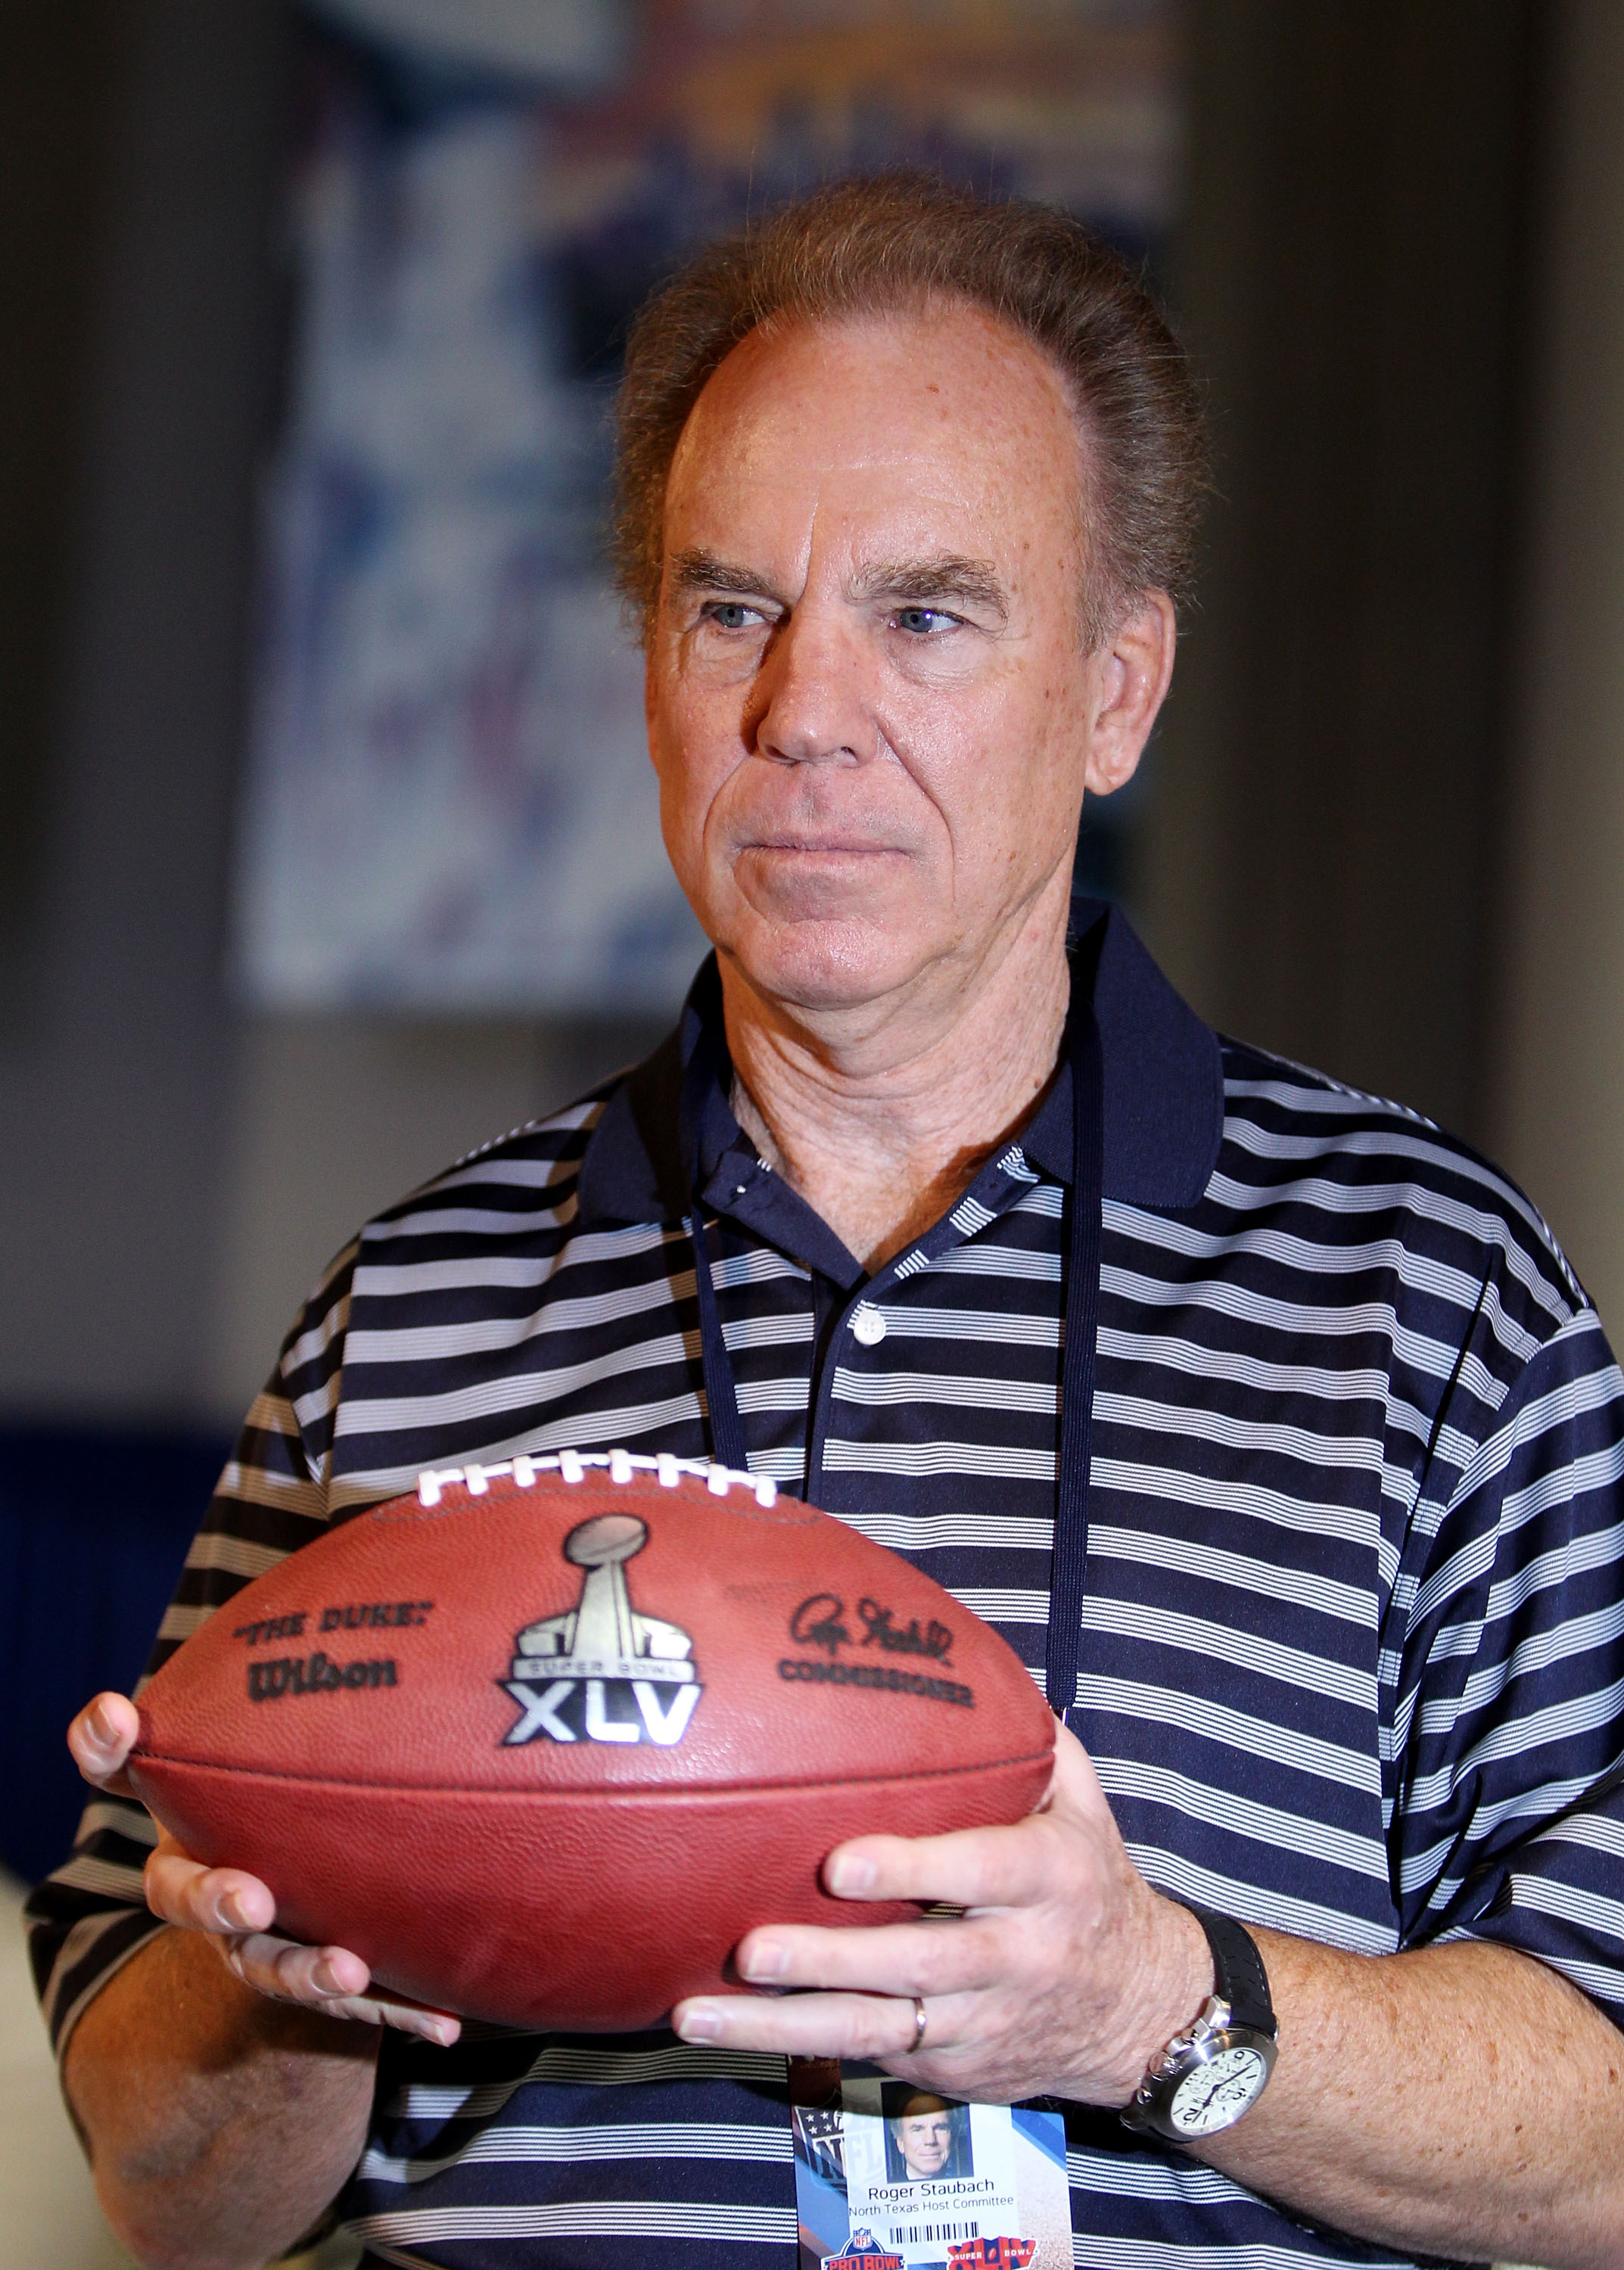 FORT LAUDERDALE, FL - FEBRUARY 04:  Roger Staubach, former NFL quarterback, holds a football with the new Super Bowl logo during a press conference held at the Fort Lauderdale Convention Center as part of media week for Super Bowl XLIV on February 4, 2010